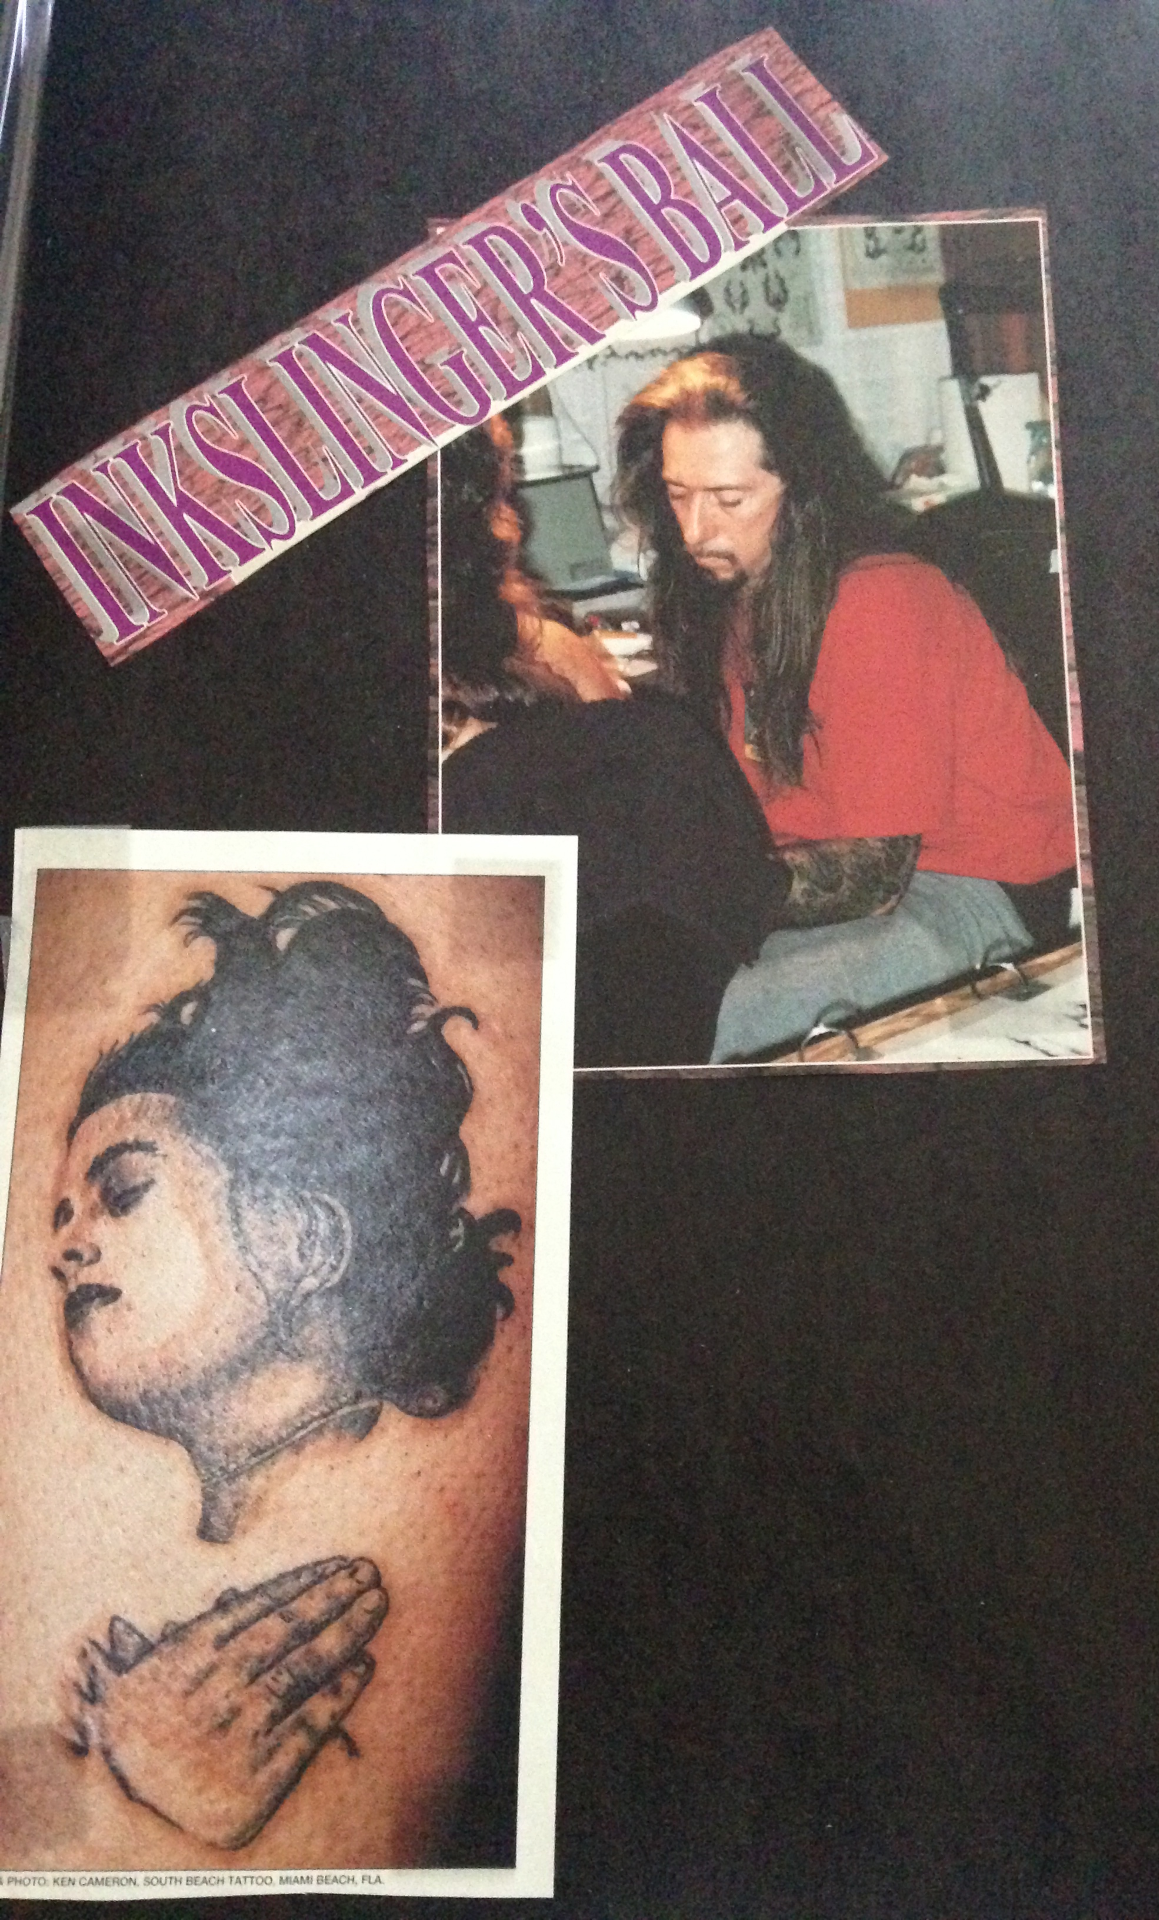 1993 inkslinger 39 s ball tattoos by lou miami 39 s original for Tattoo convention los angeles